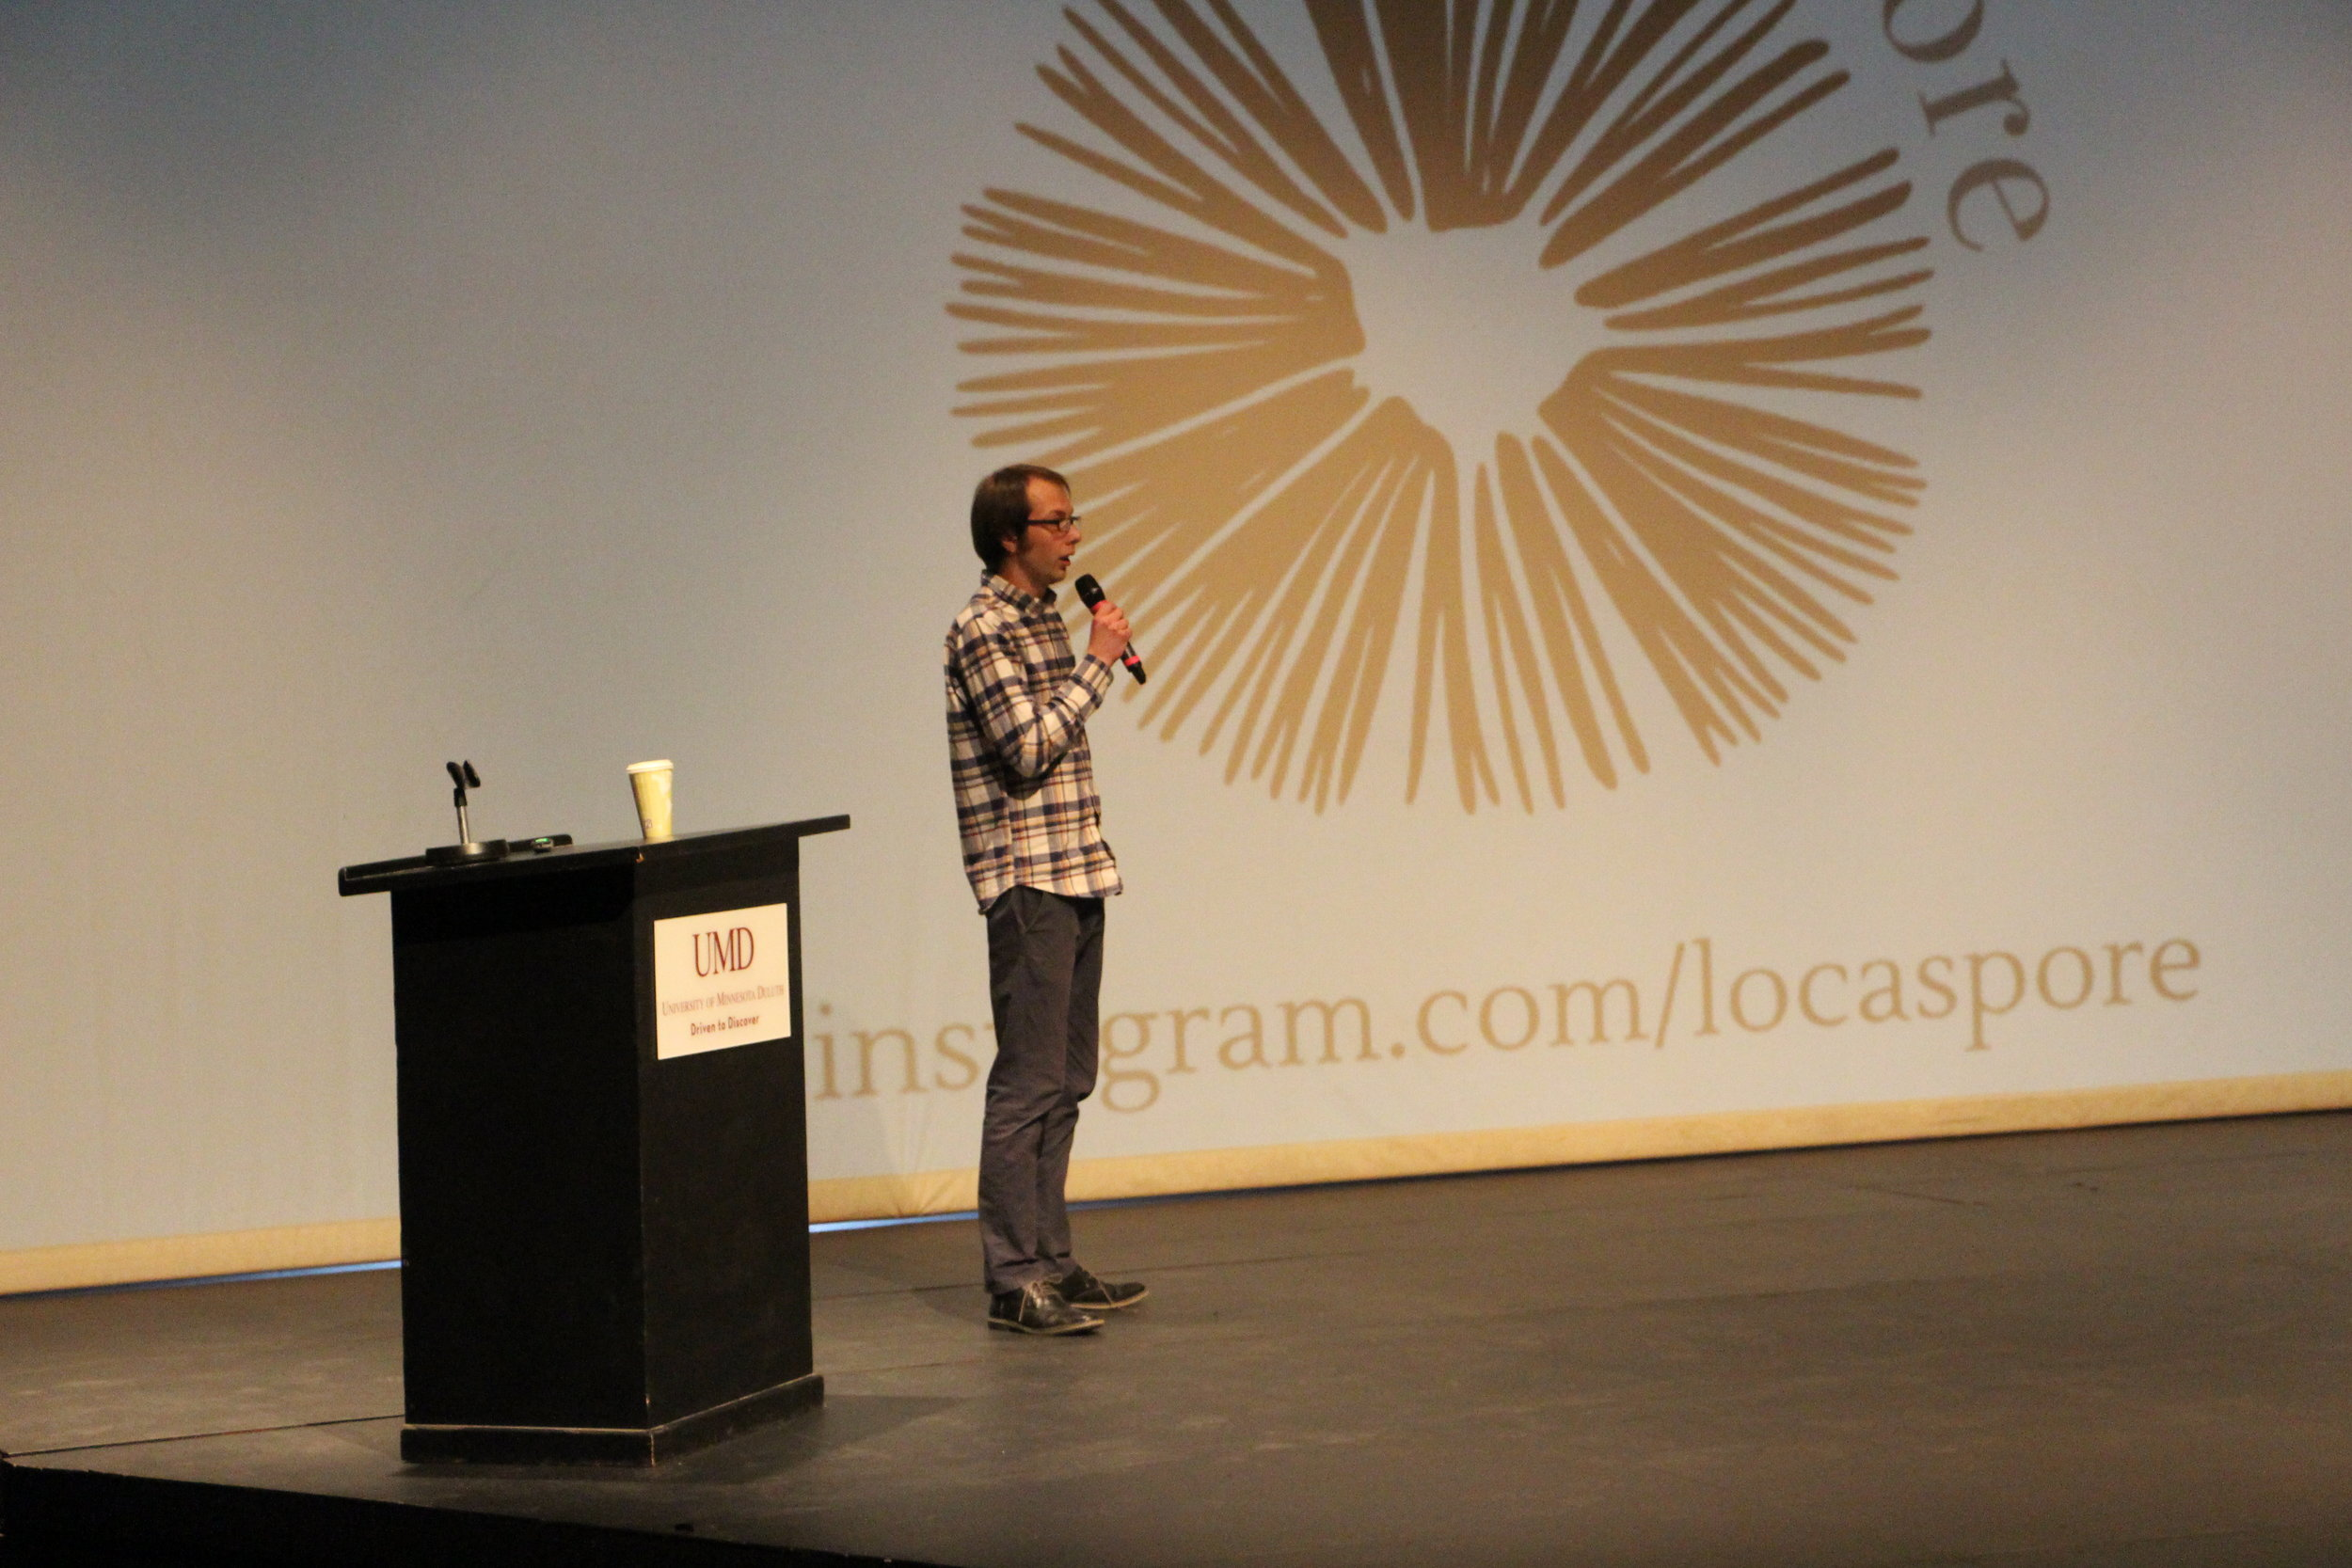 UMD graduate student Kevin Swanberg was awarded $1,500 for his winning idea, Locaspore.Photo by Tyler Schendel.